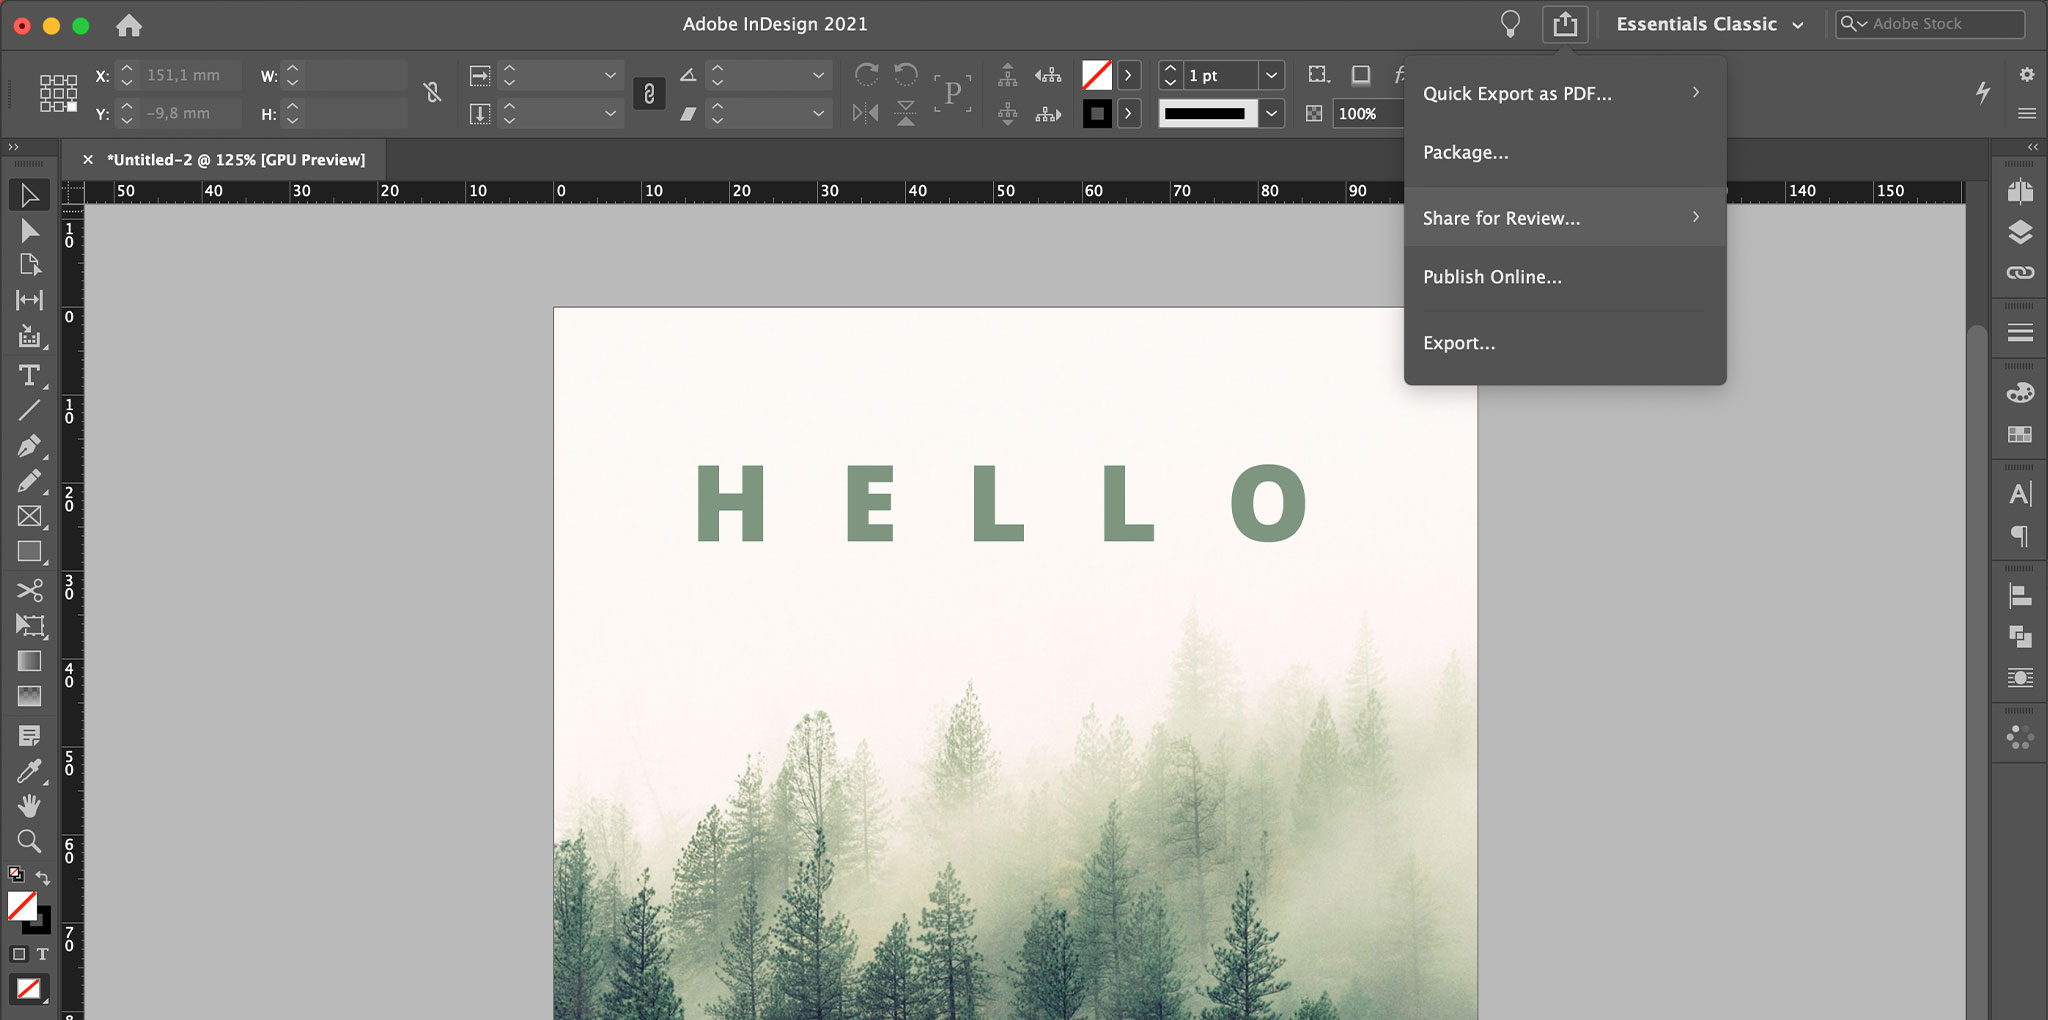 Nieuwe features Adobe 2021 - Share for review